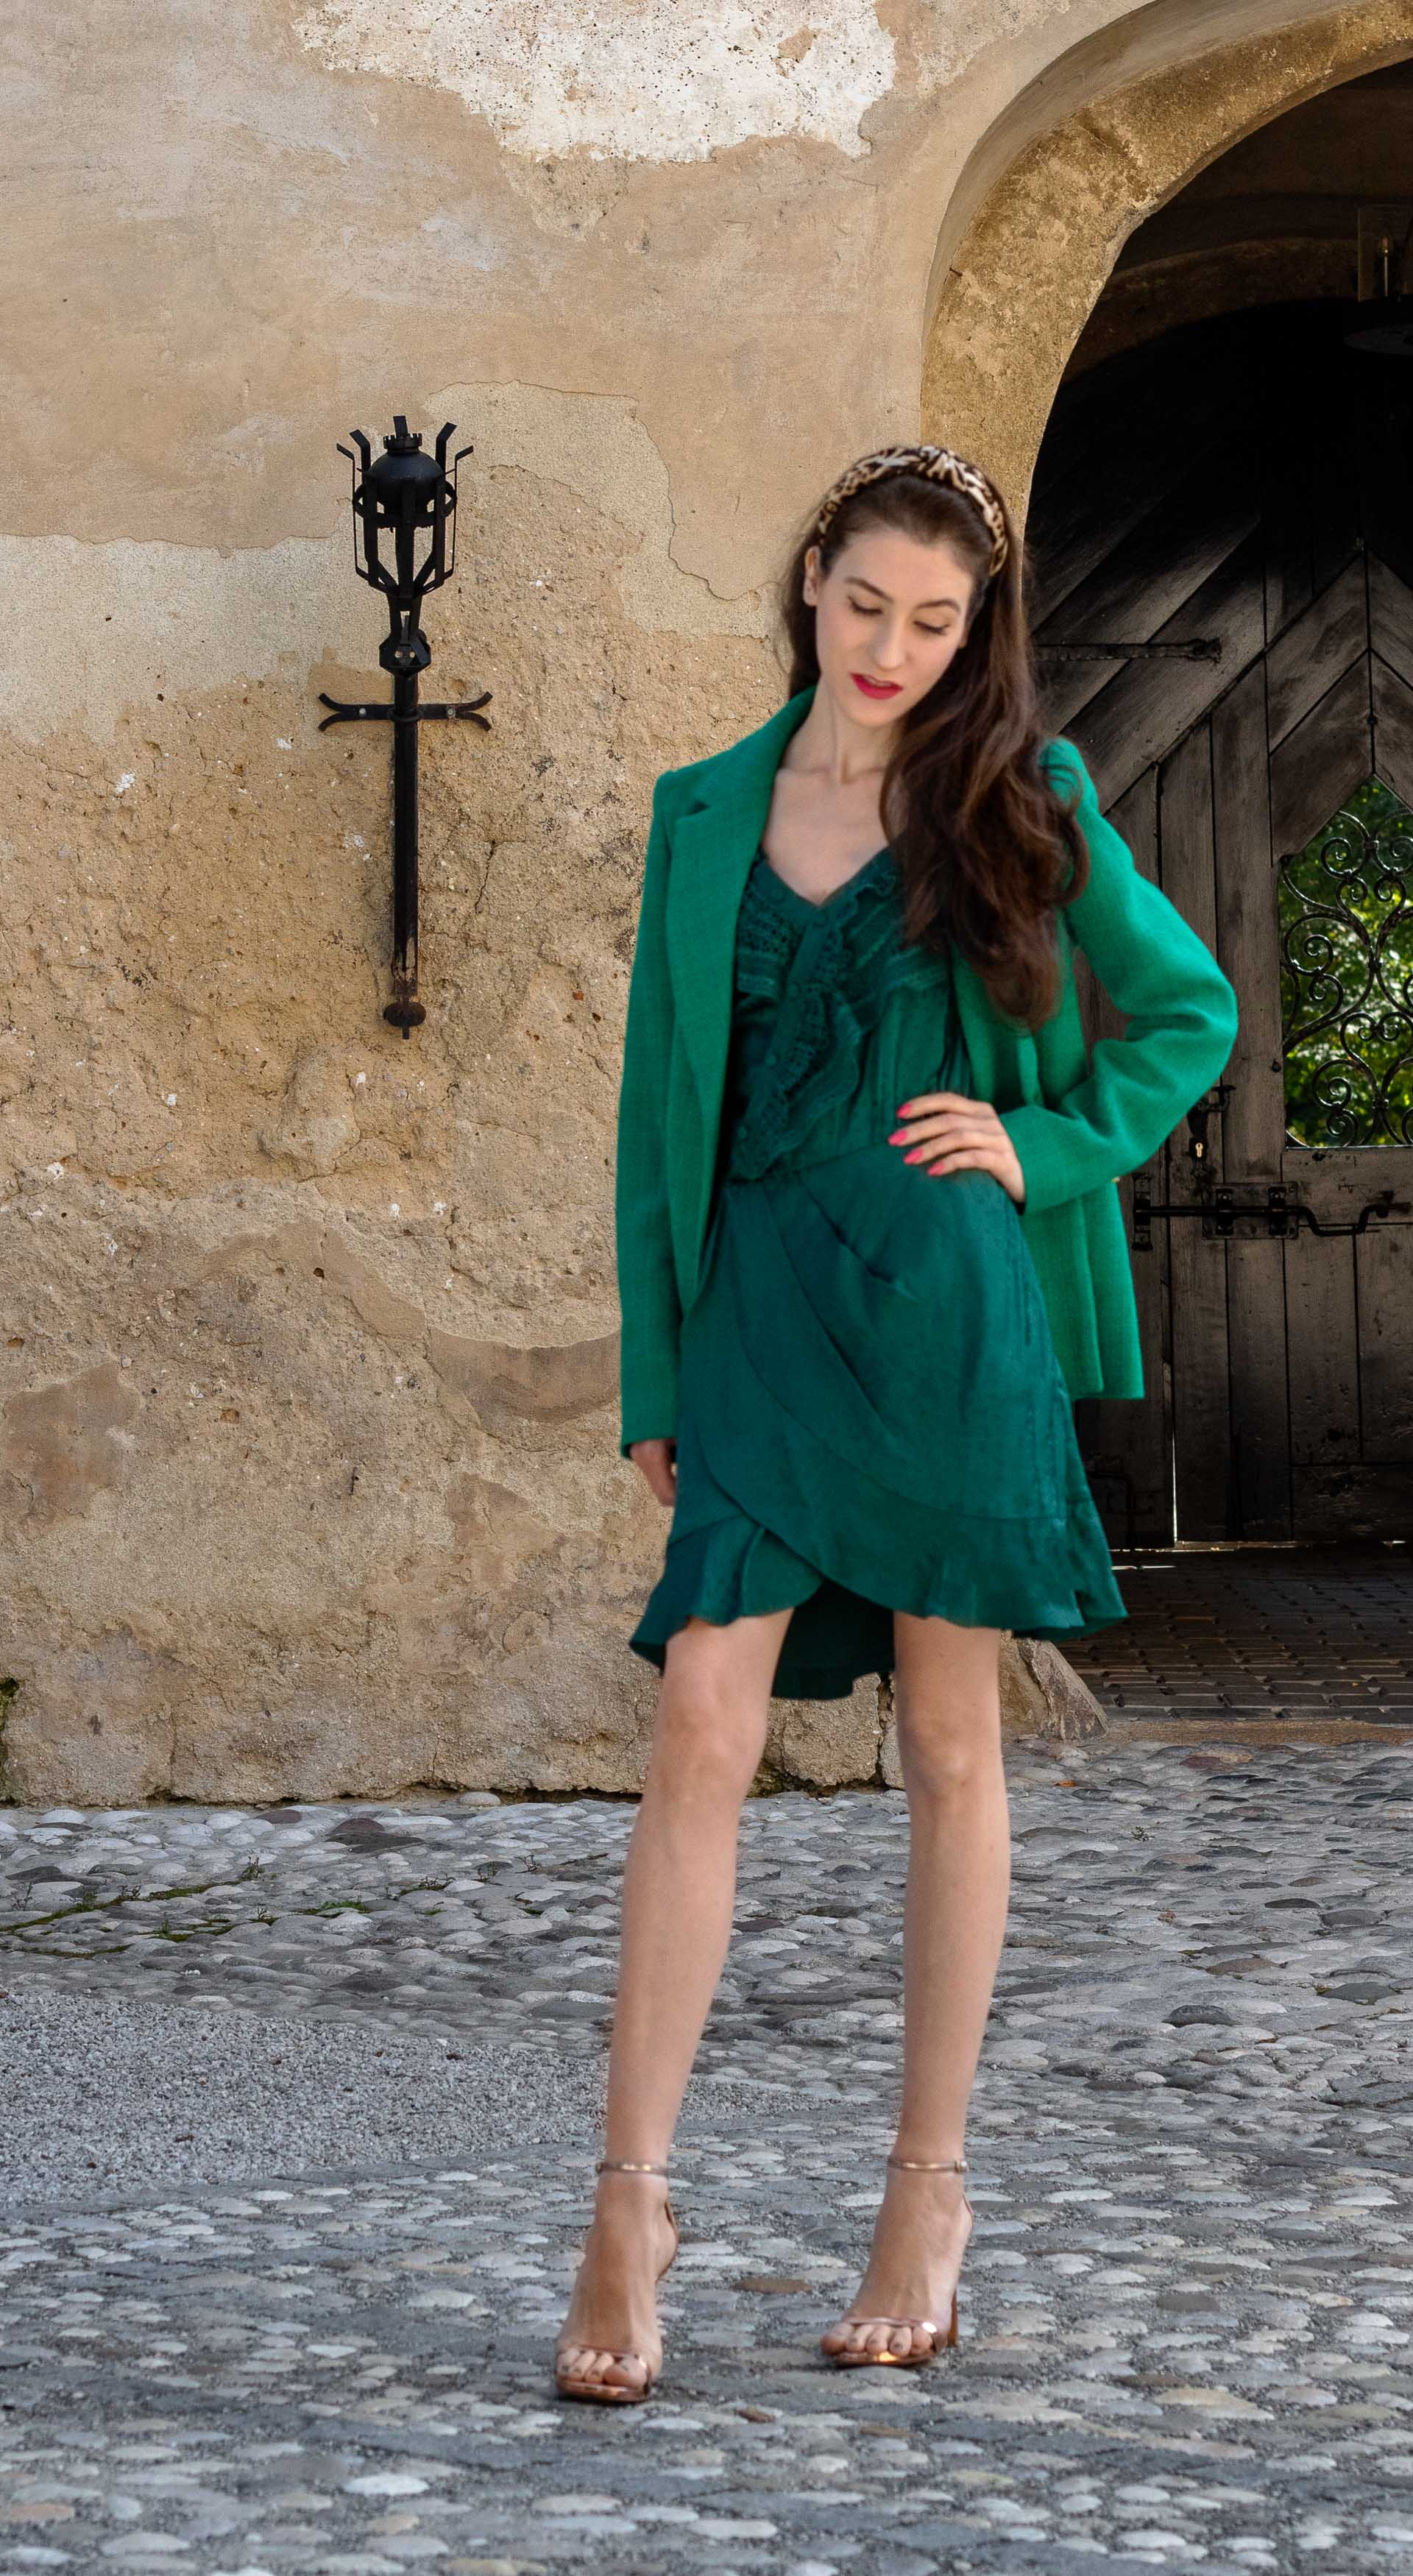 Fashion blogger Veronika Lipar of Brunette from Wall Street dressed in sexy formal wedding guest outfit green one shoulder self-portrait dress Sandro Paris double breasted blazer Stuart Weitzman sandals for micro garden wedding in late summer